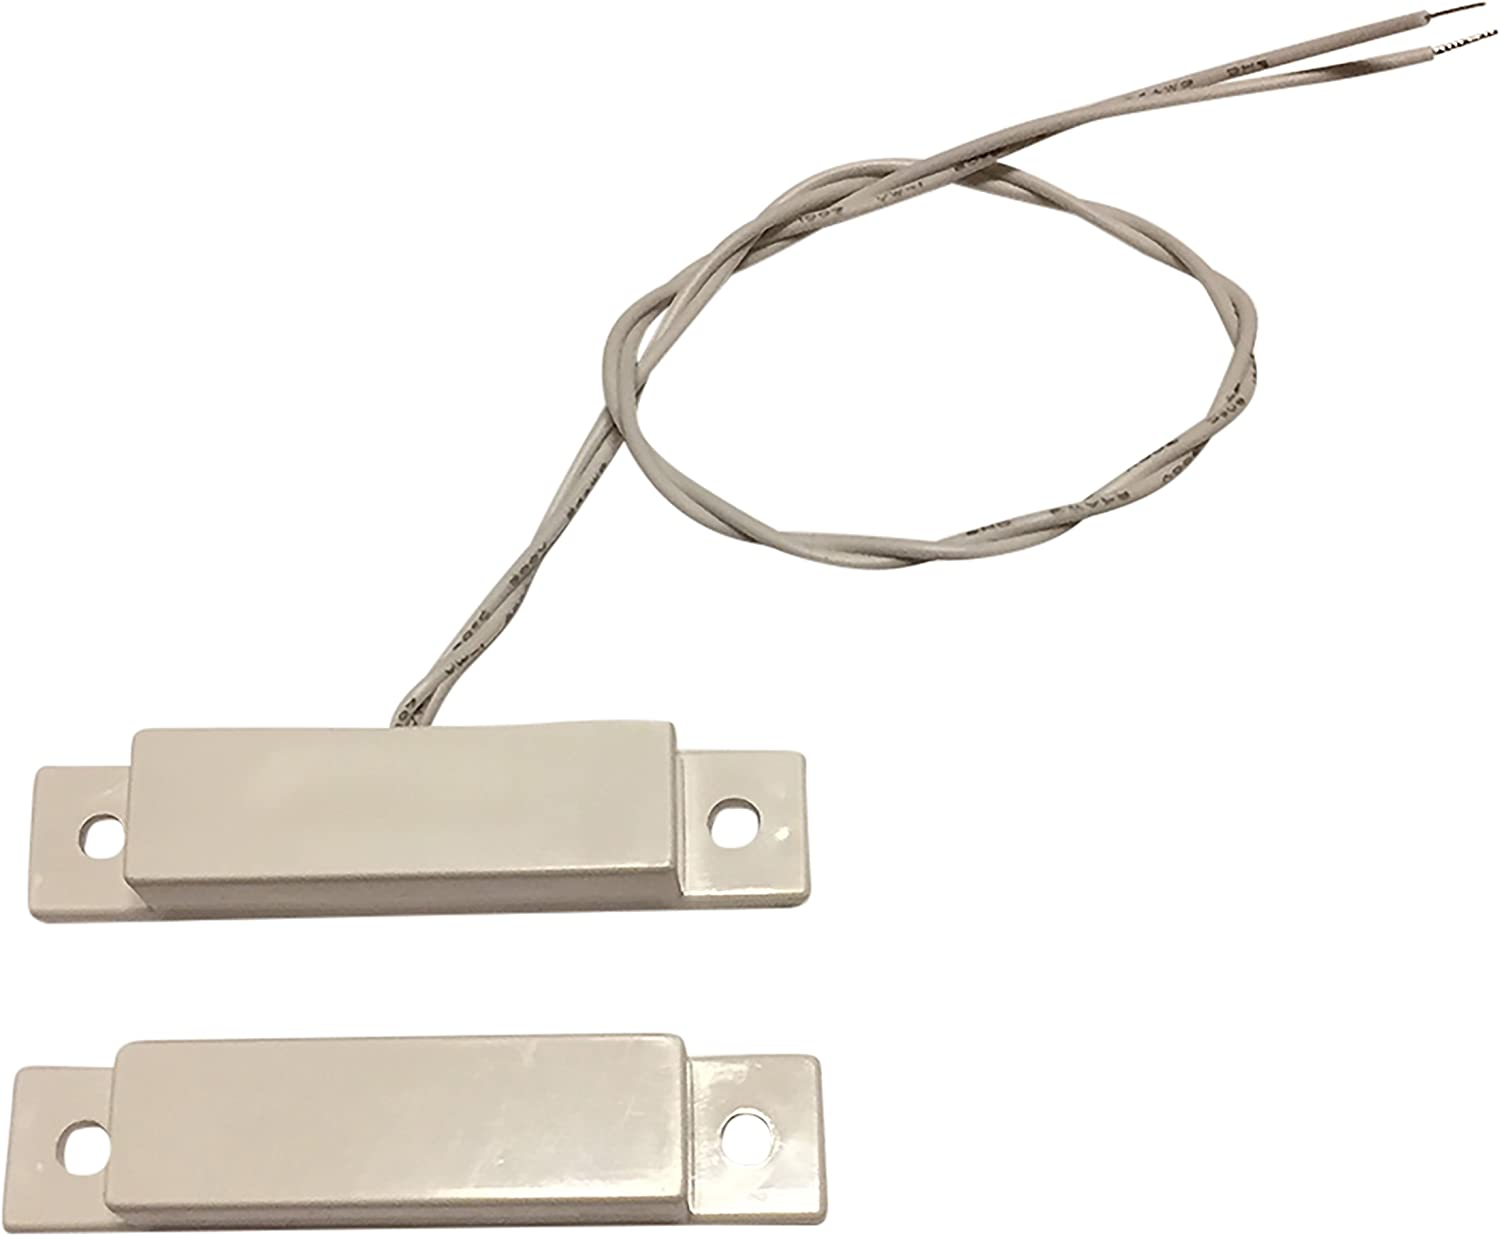 """1 pcs Wired White Door Contacts Surface Mount NC Security Alarm Door Window Sensors.These /¾/"""" Door Contact Position switches DCS Work with All Access Control and Burglar Alarm Systems"""